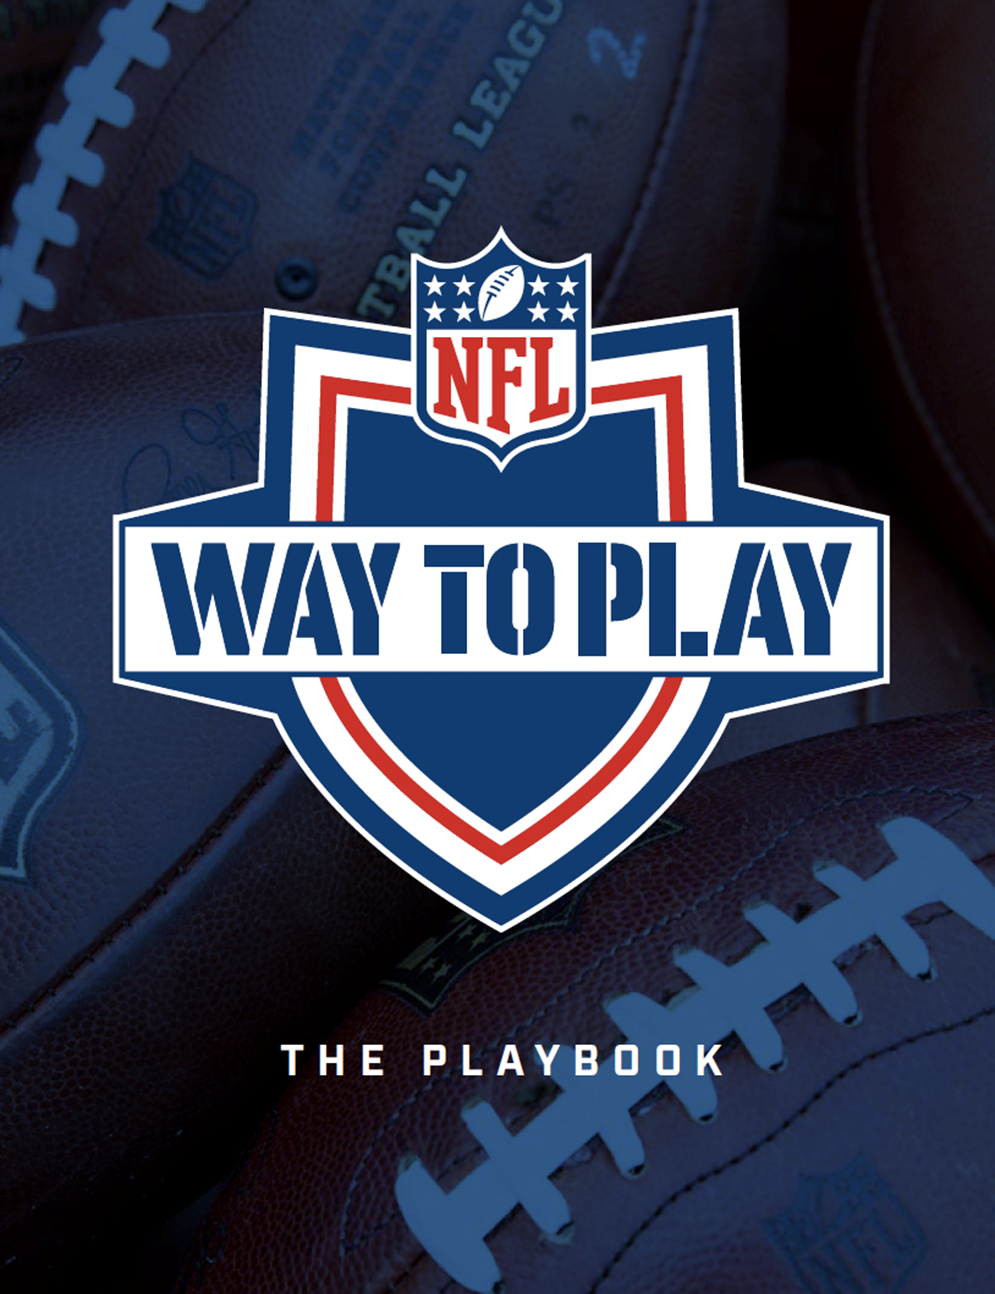 Download the Way to Play Playbook